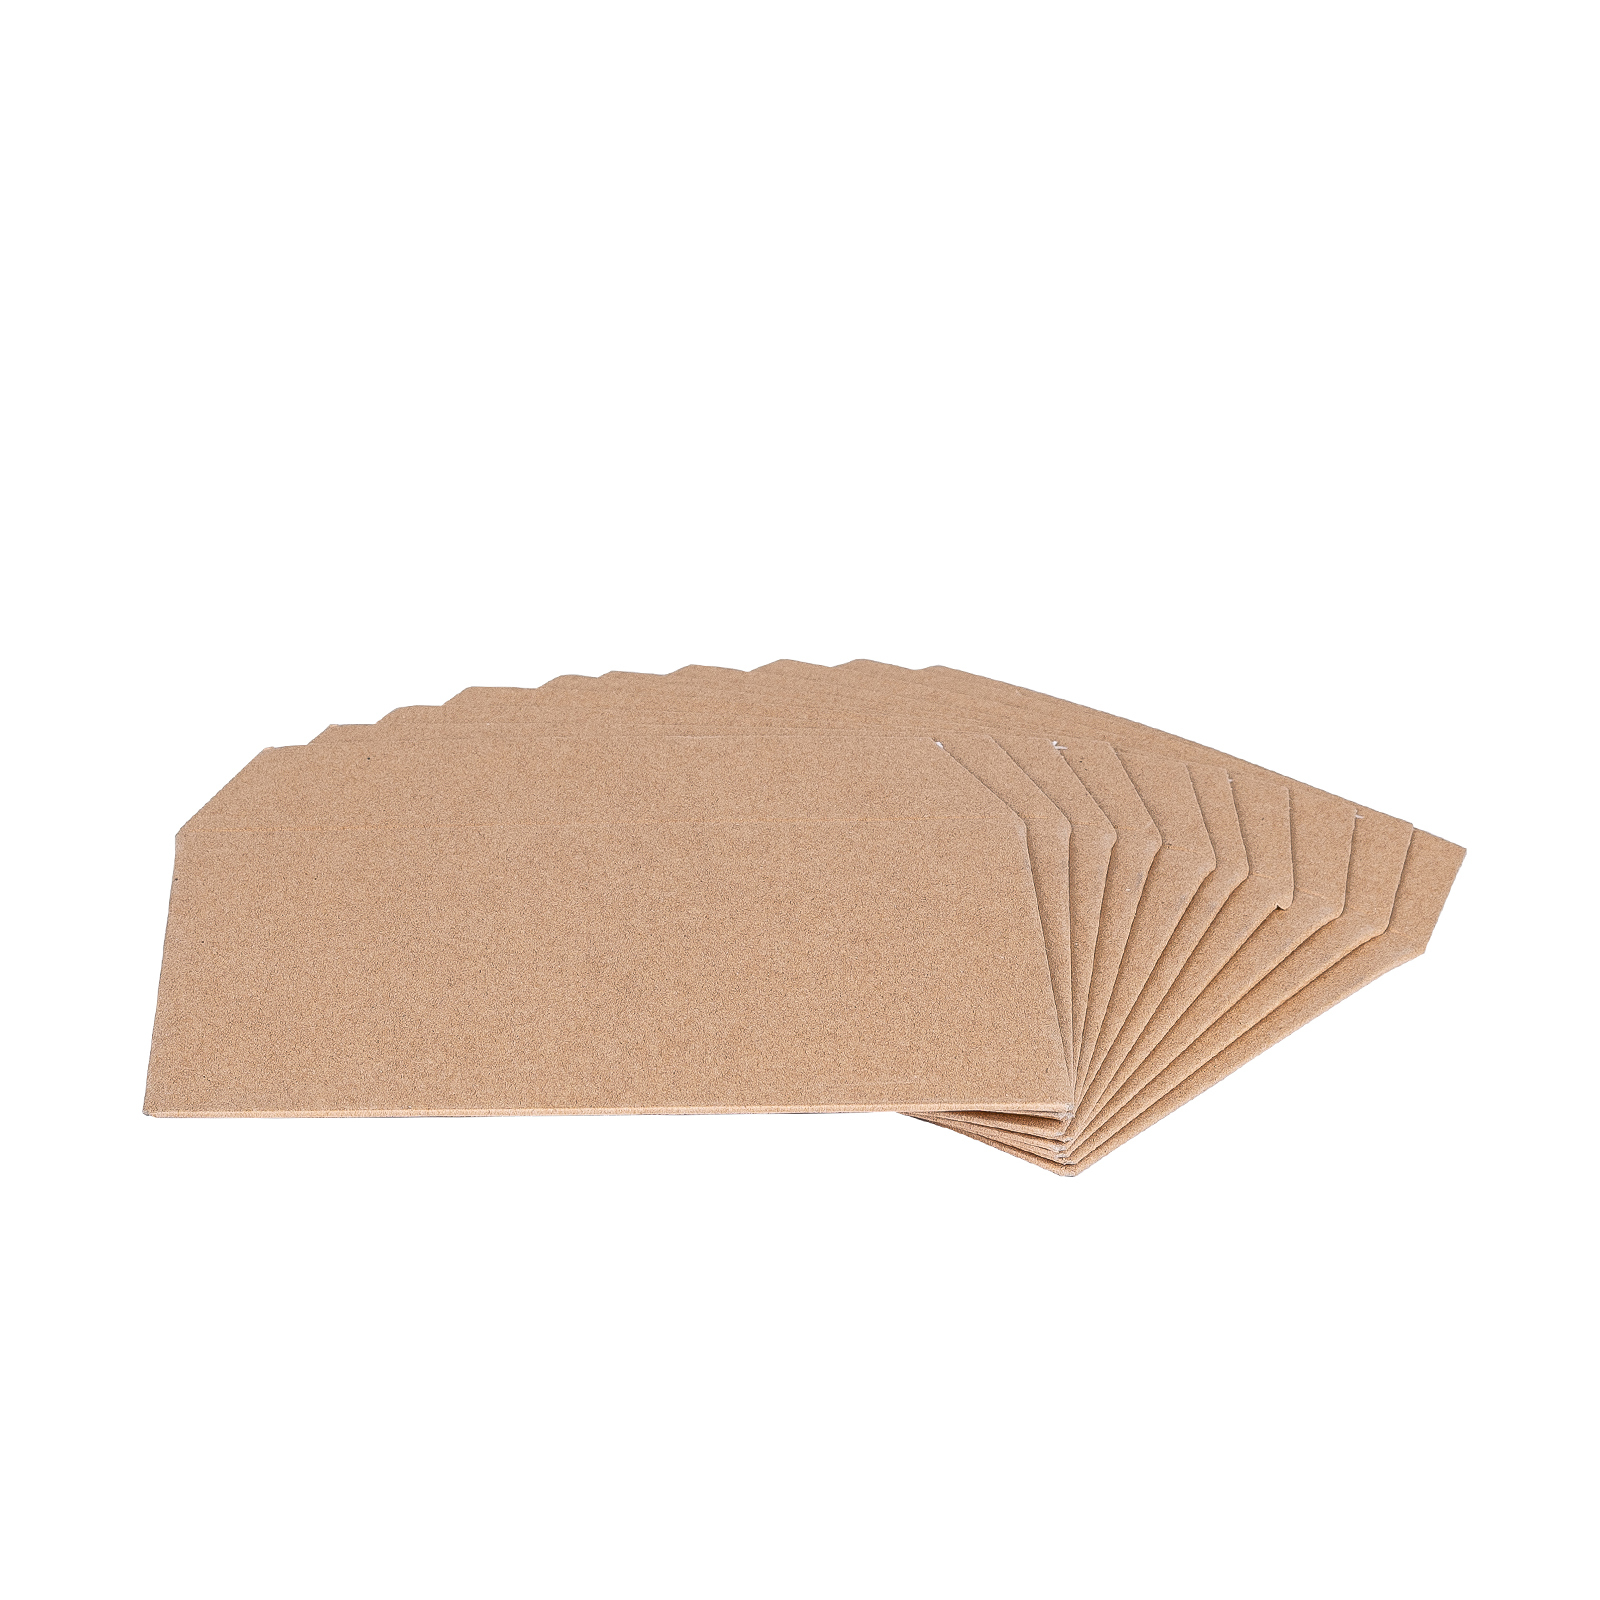 Wrap & Move 148 x 210mm Cardboard A5 Envelope - 10 Pack